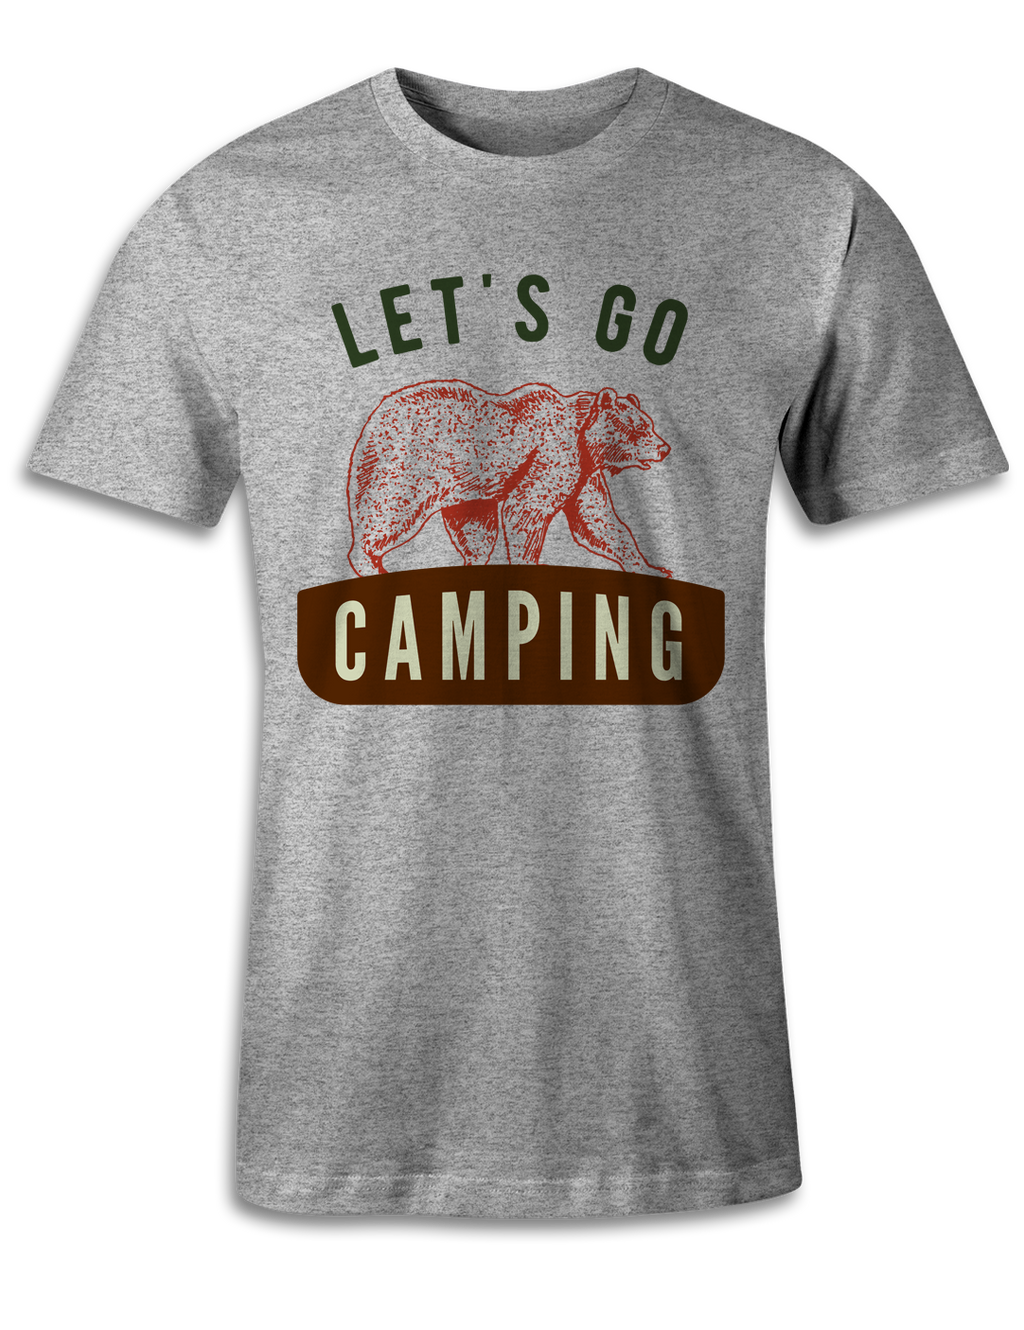 Let's Go Camping - Unisex Tee